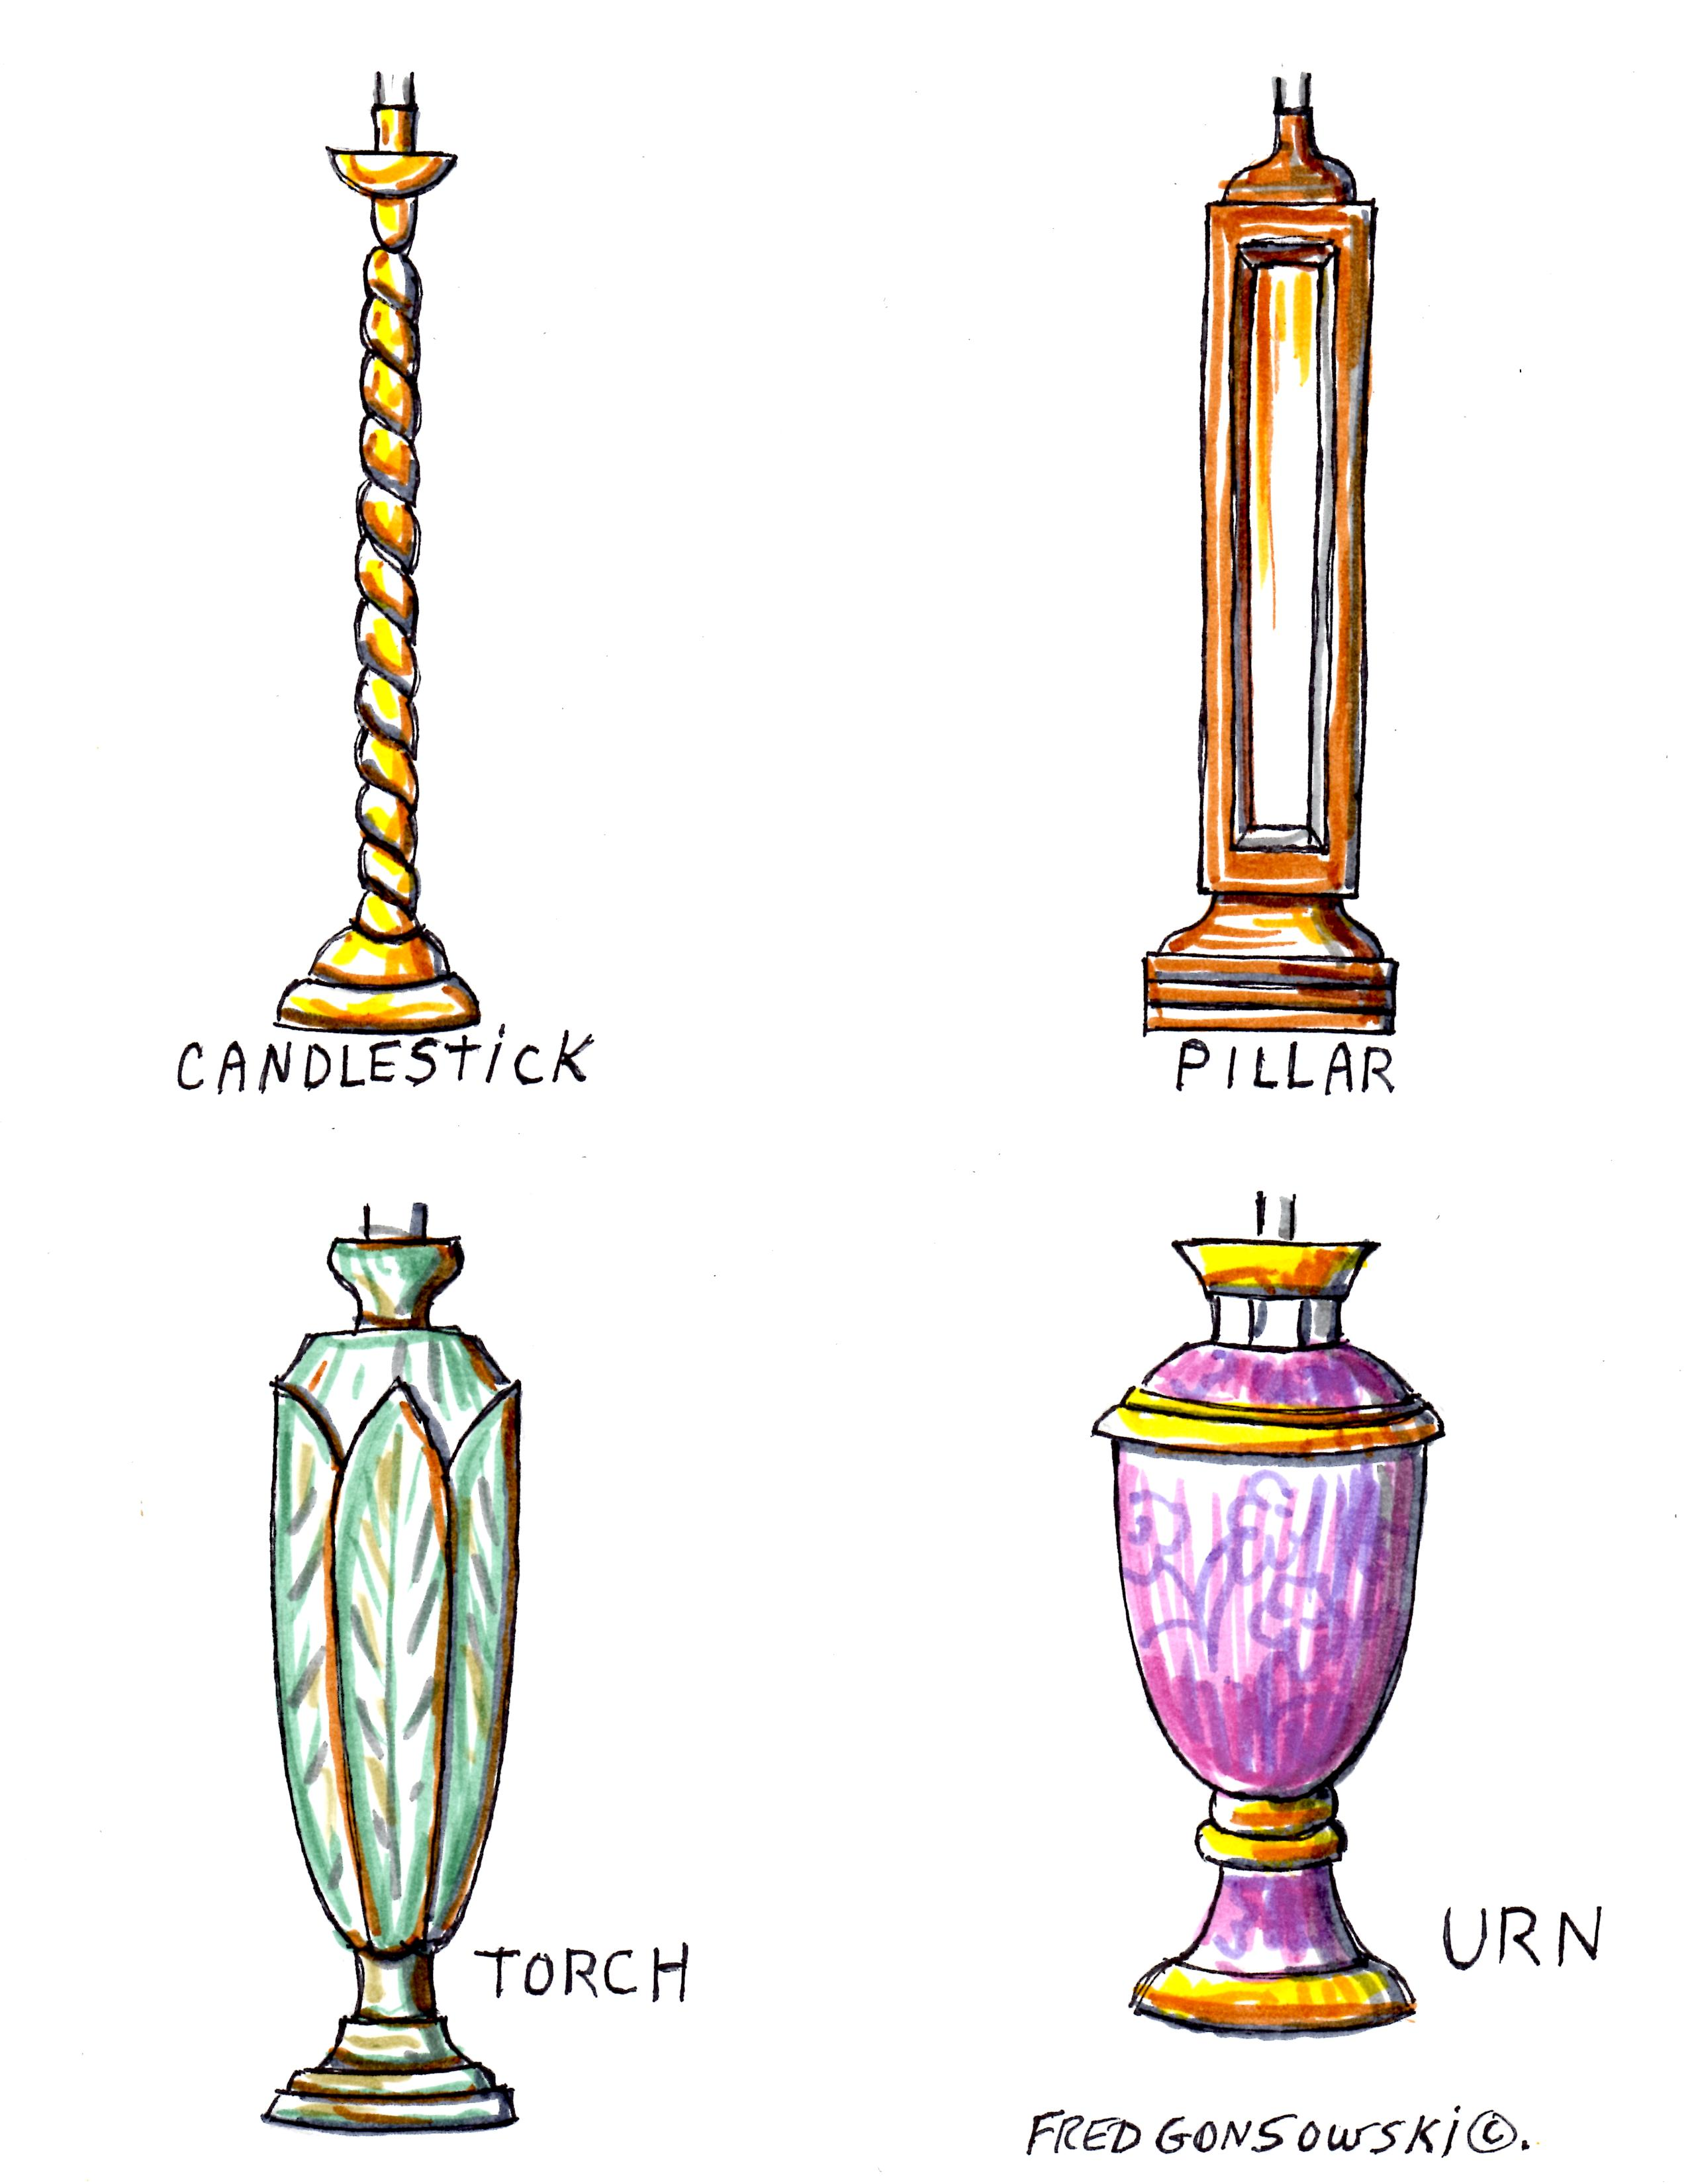 The Four Different Styles Of Lamp Bases